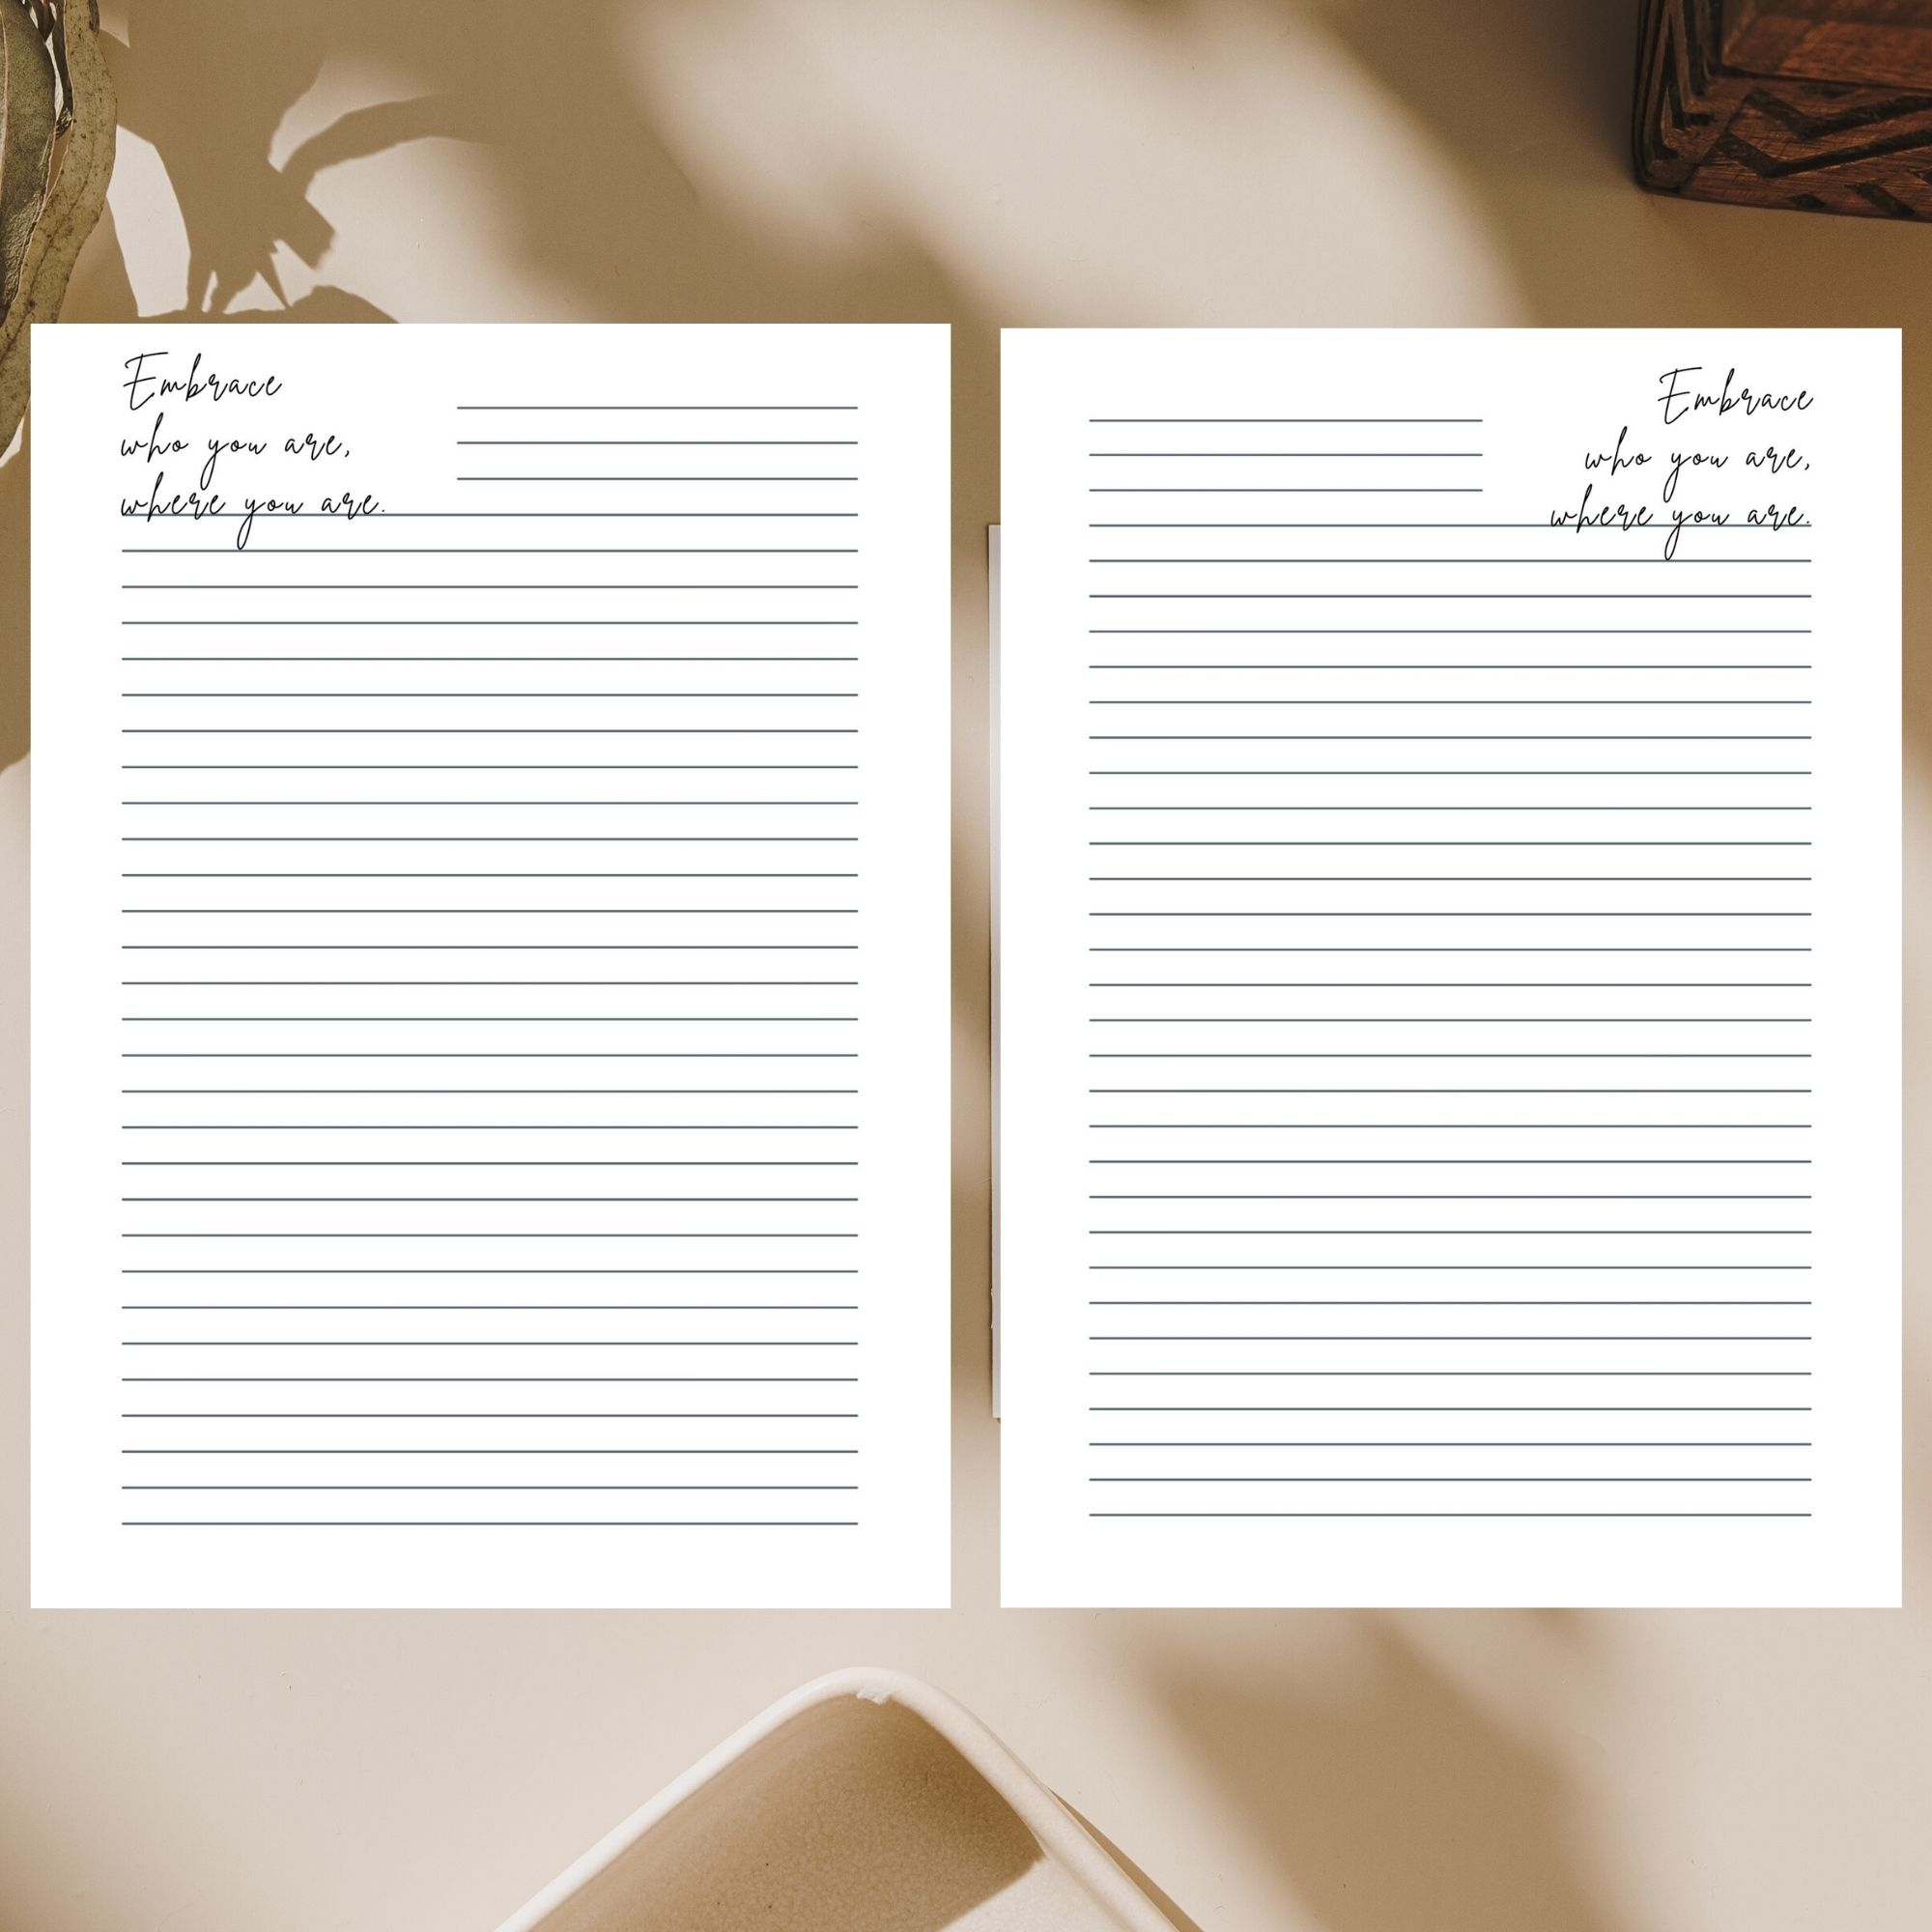 Printable Stationary from the Cottage Notebook